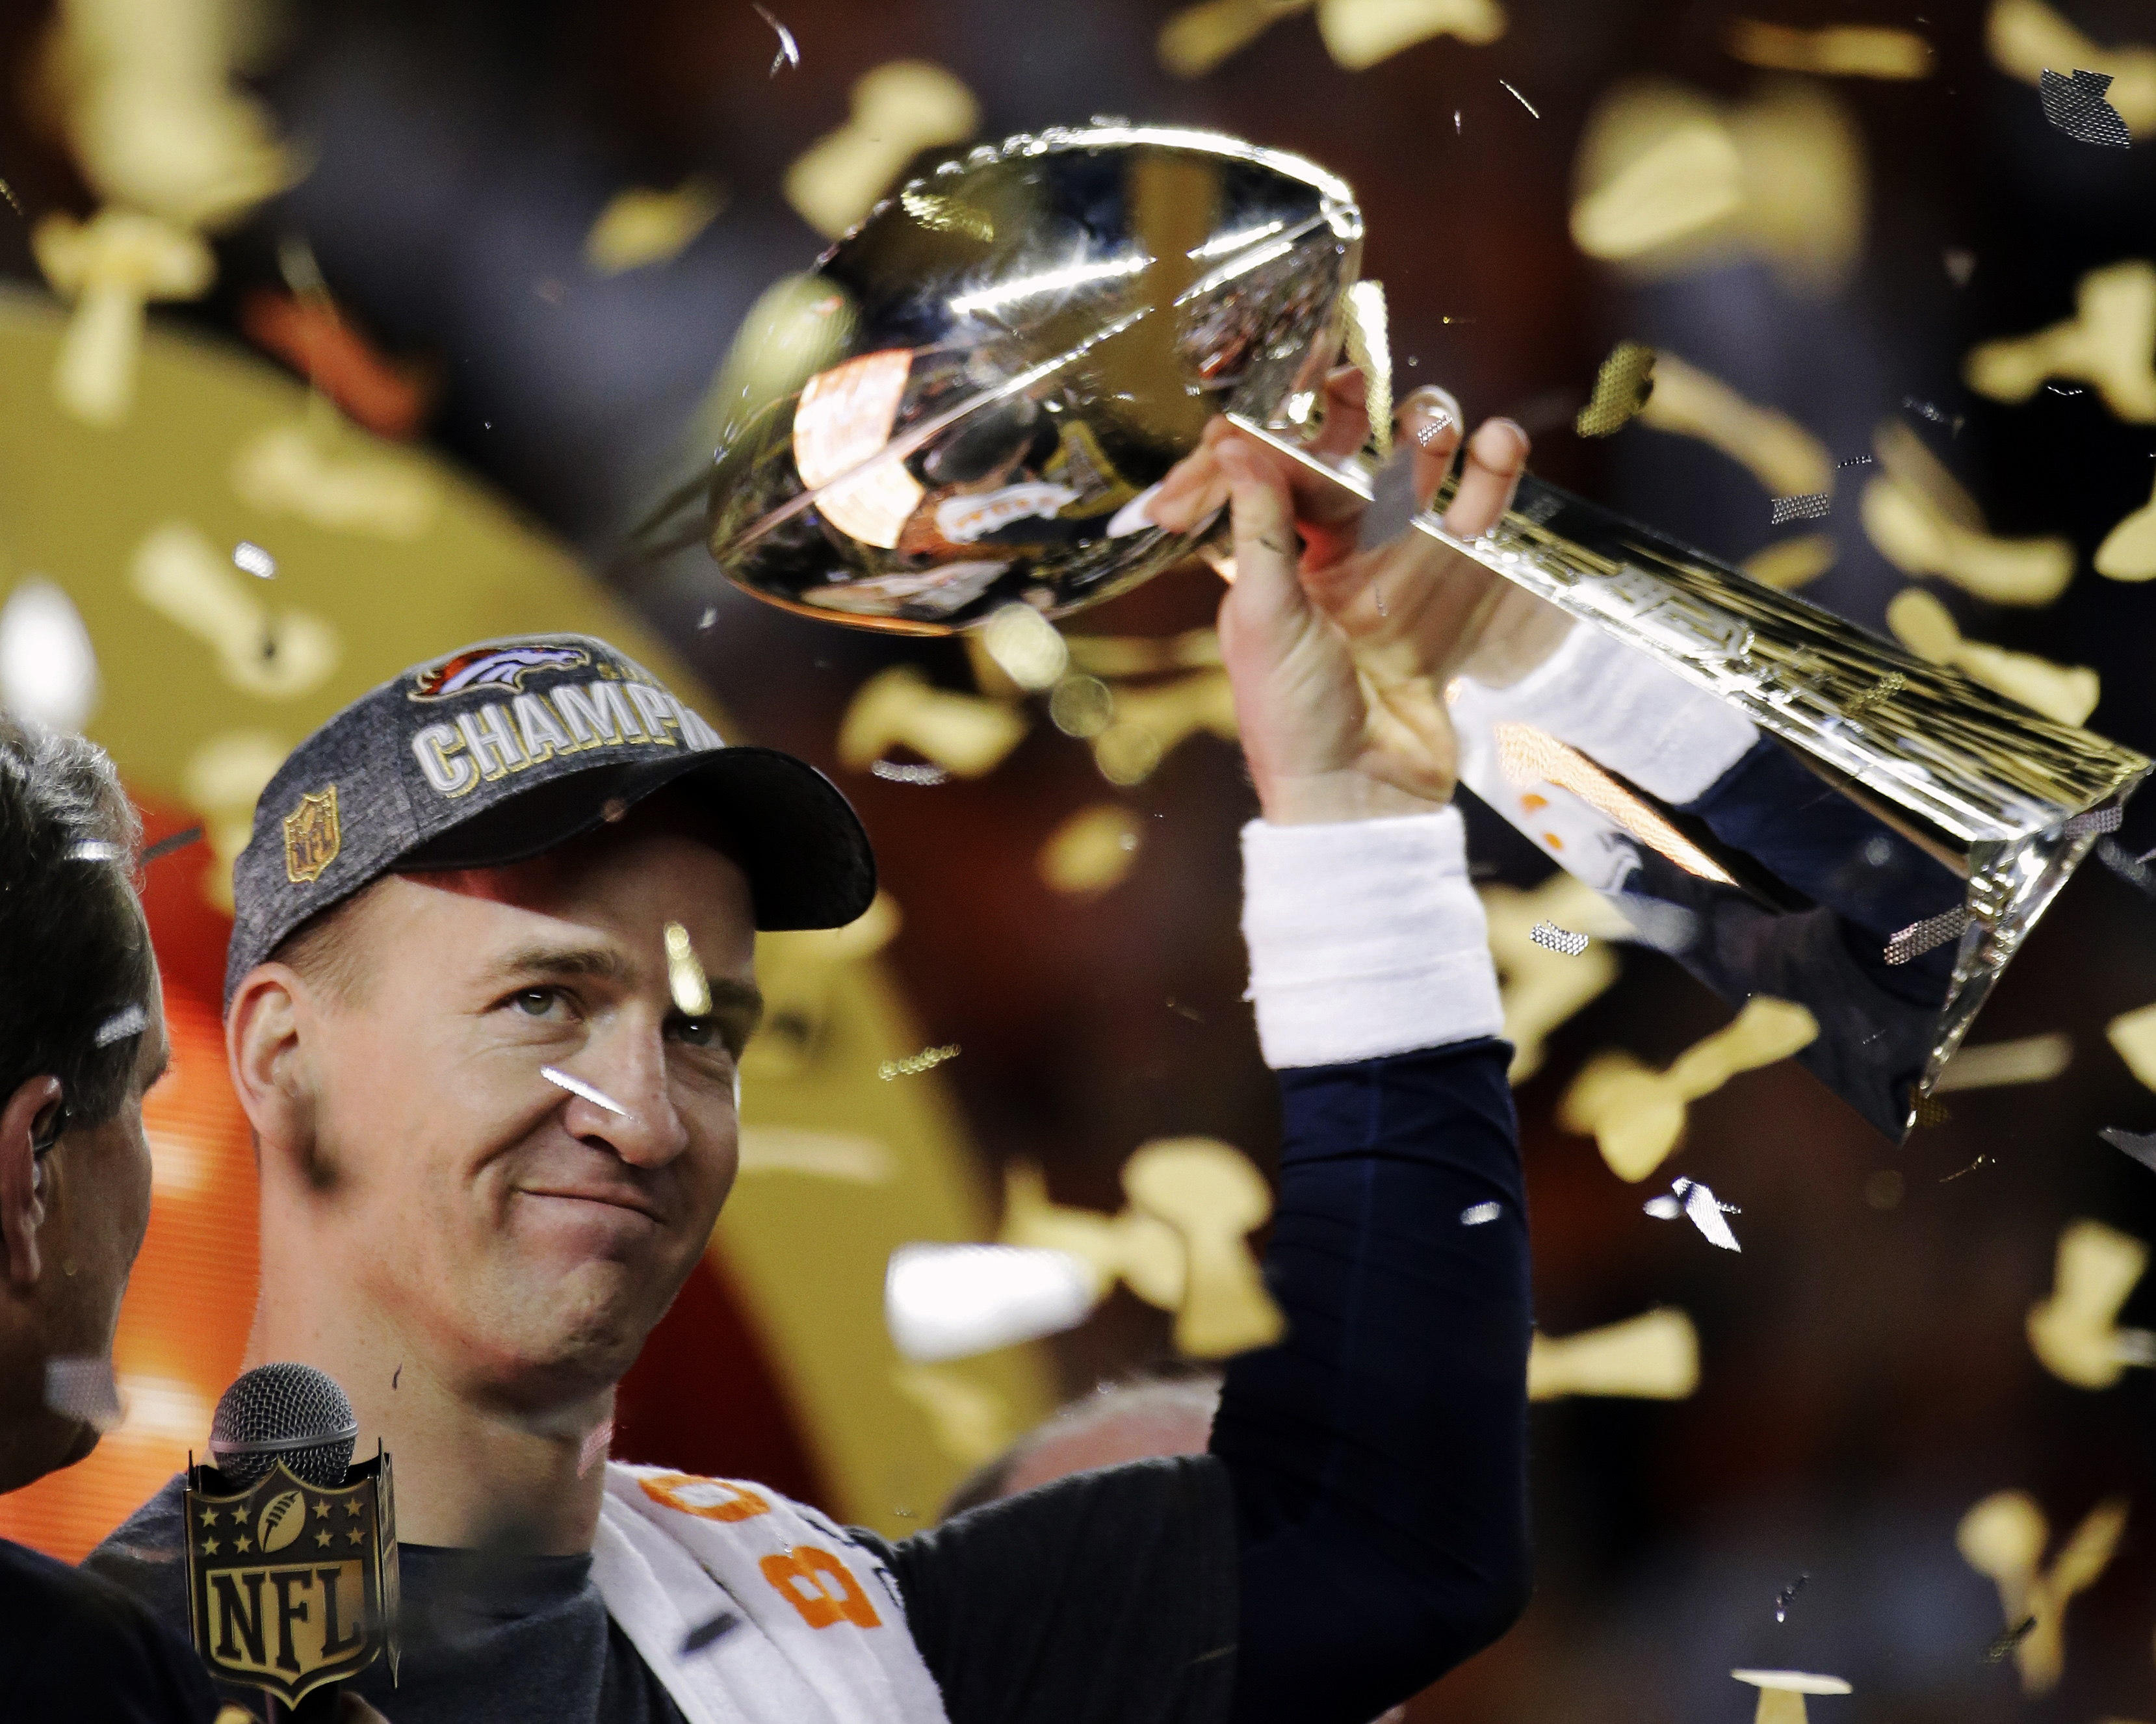 FILE - In this Feb. 7, 2016, file photo, Denver Broncos' Peyton Manning holds up the trophy after the NFL Super Bowl 50 football game in Santa Clara, Calif. A person with knowledge of the decision tells The Associated Press on Sunday, March 6, 2016, that